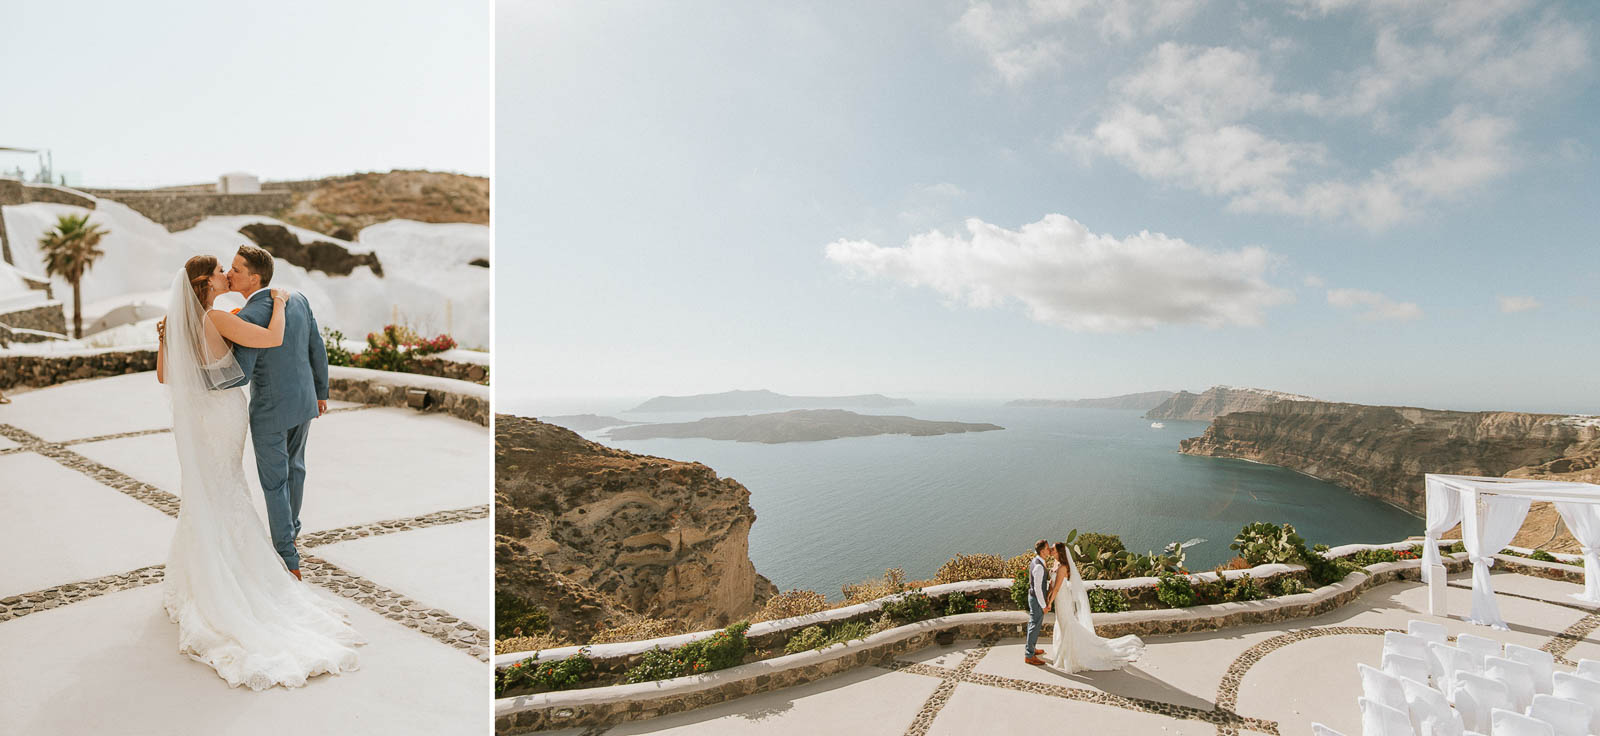 Santorini-Wedding-Photographer-Greece-Destination-Weddings-Mait-Juriado-M&J-Studios-066